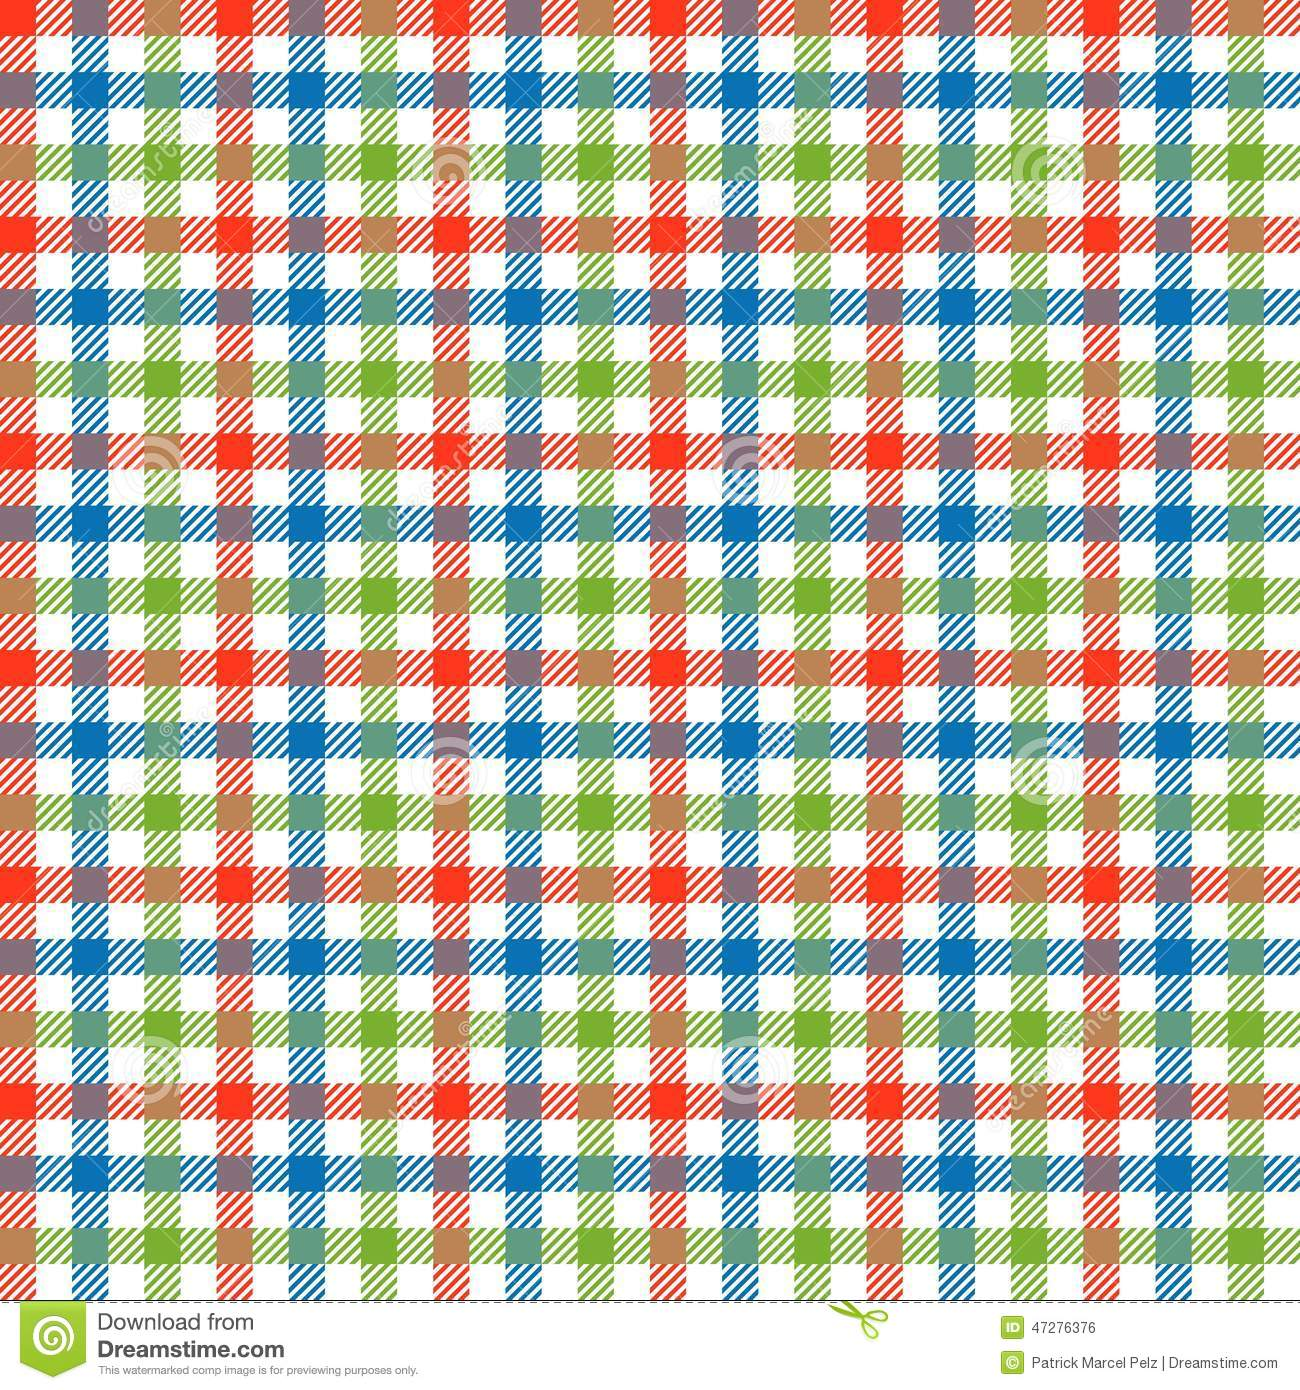 Checkered Tablecloths Pattern Colorful - Endlessly Stock ...